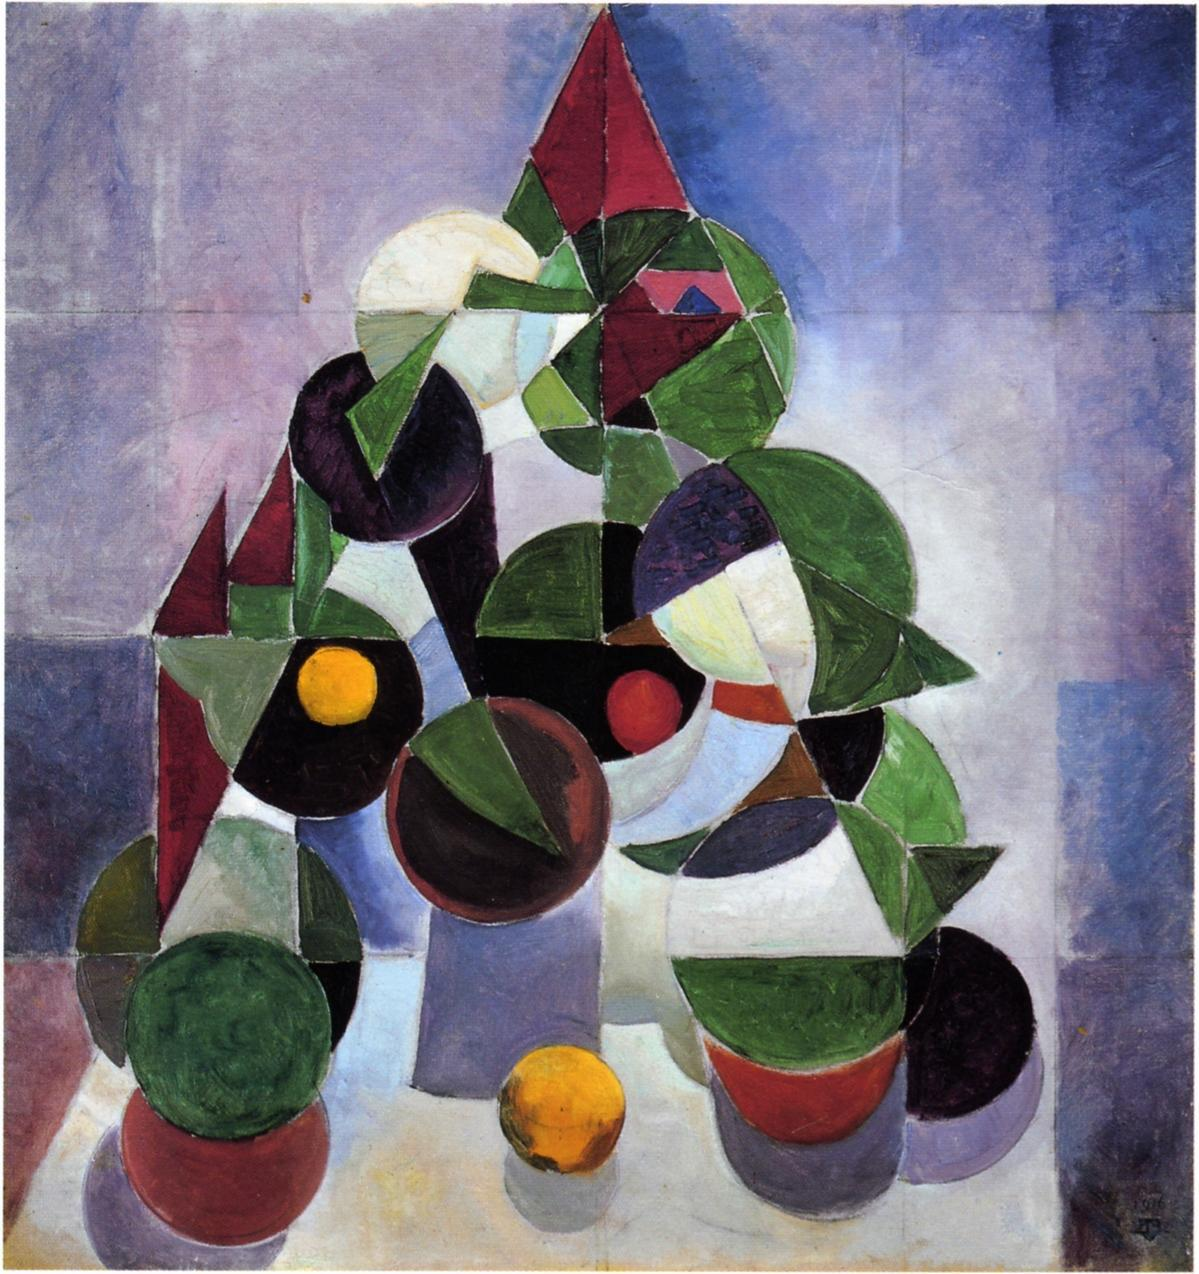 Composition 1, by Theo Van Doesburg made in 1916, following the fundamentals of neoplasticism.